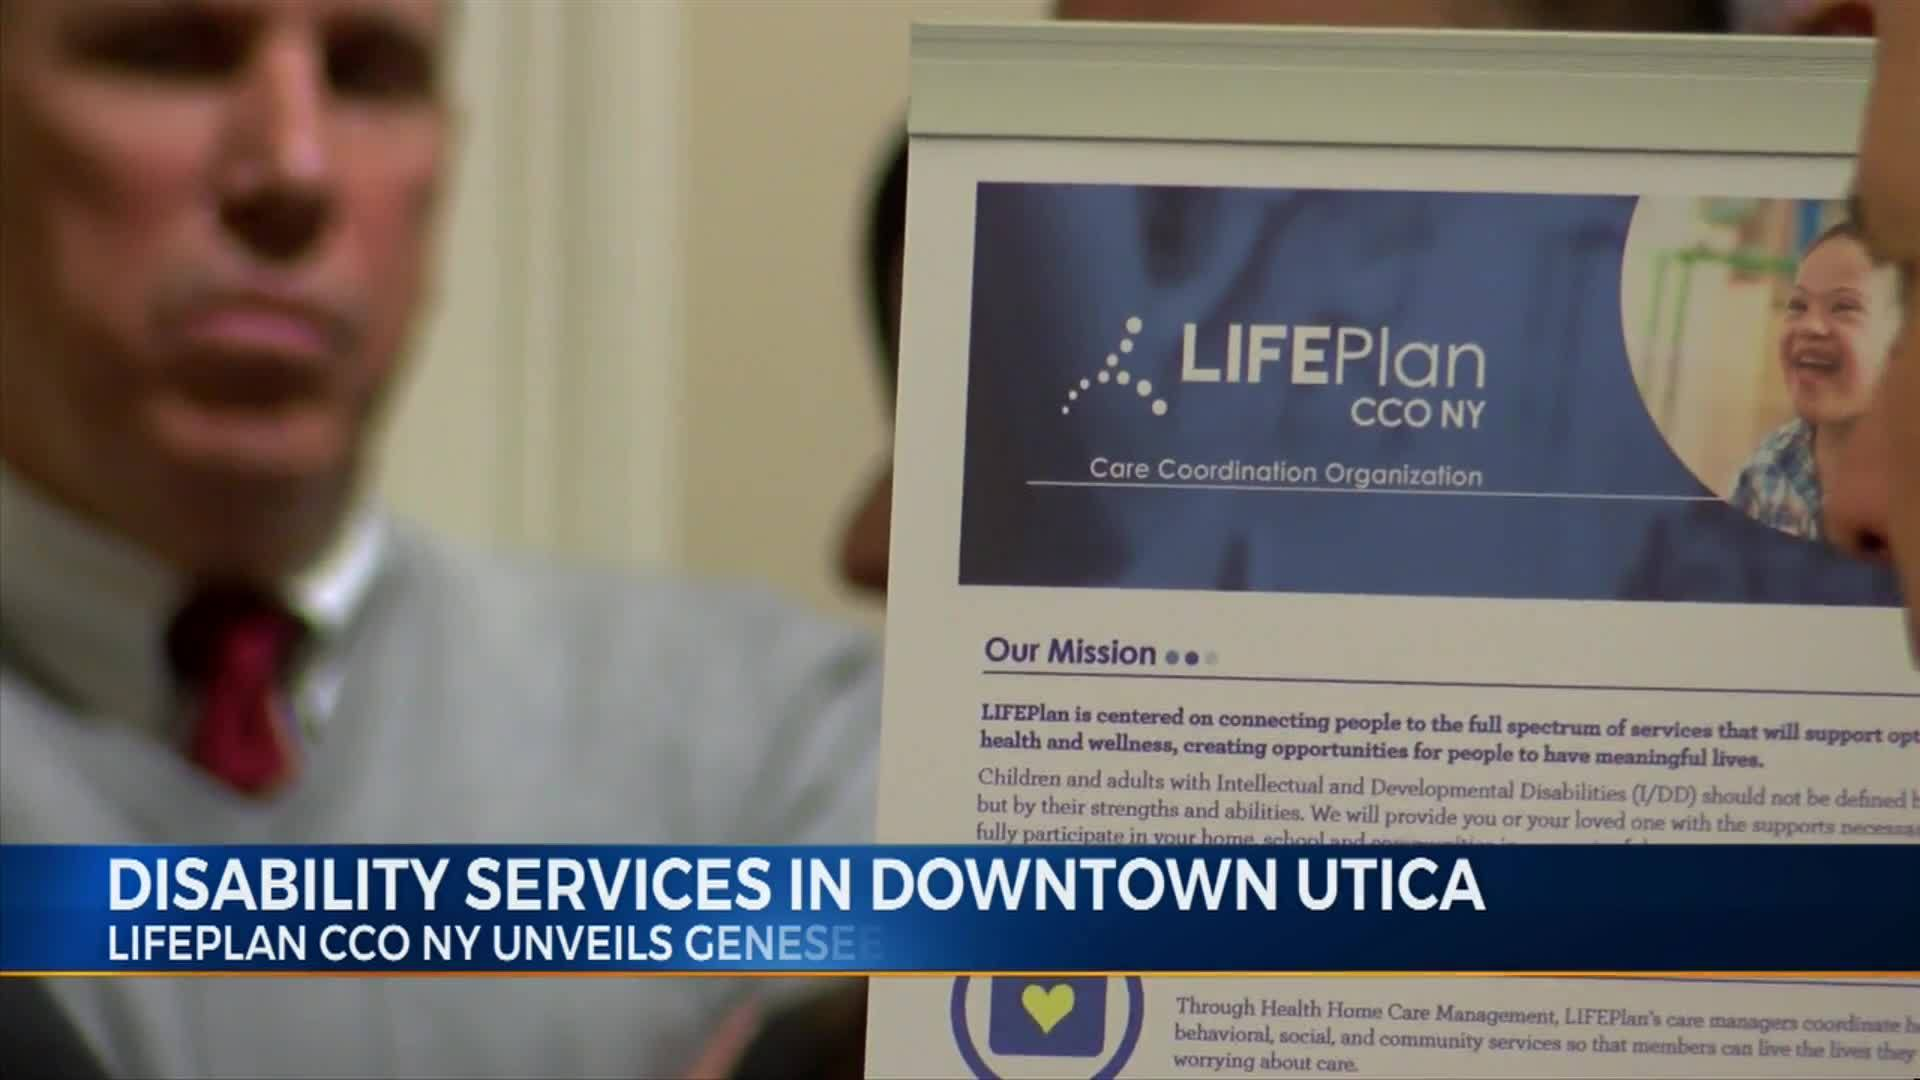 Disability_Services_in_Downtown_Utica_4_20181129232651